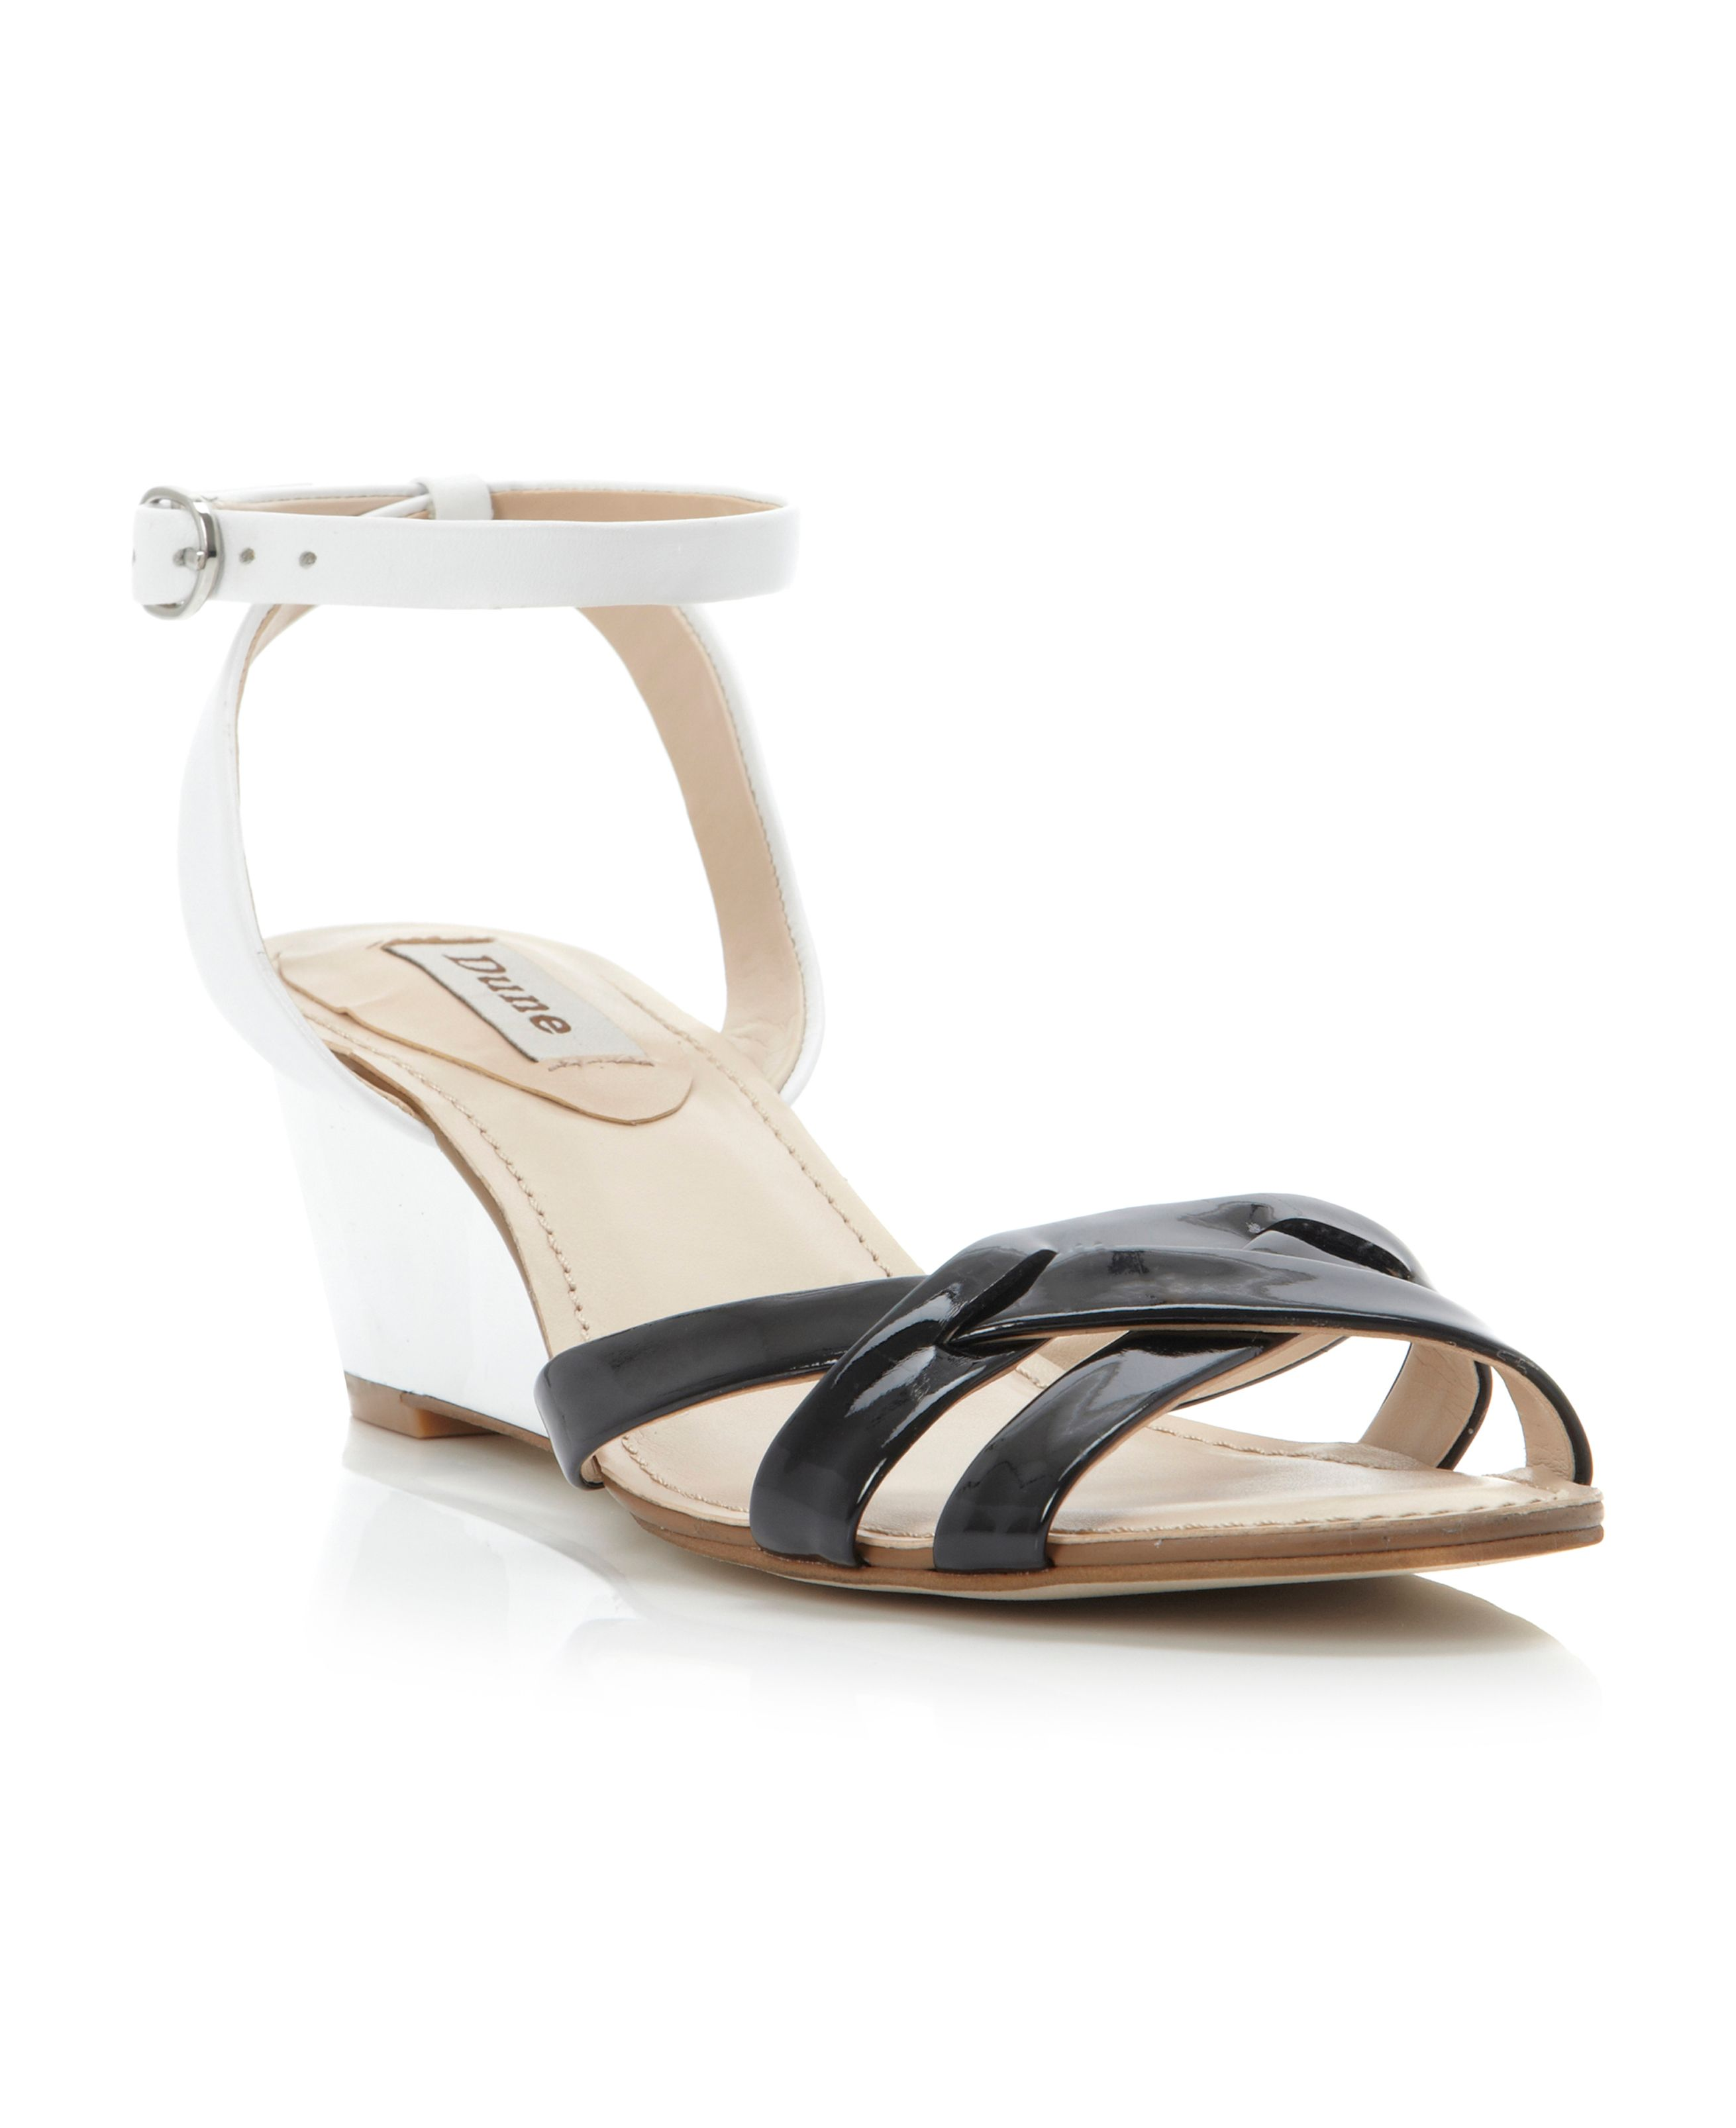 Guilty metal wedge cross vamp sandals